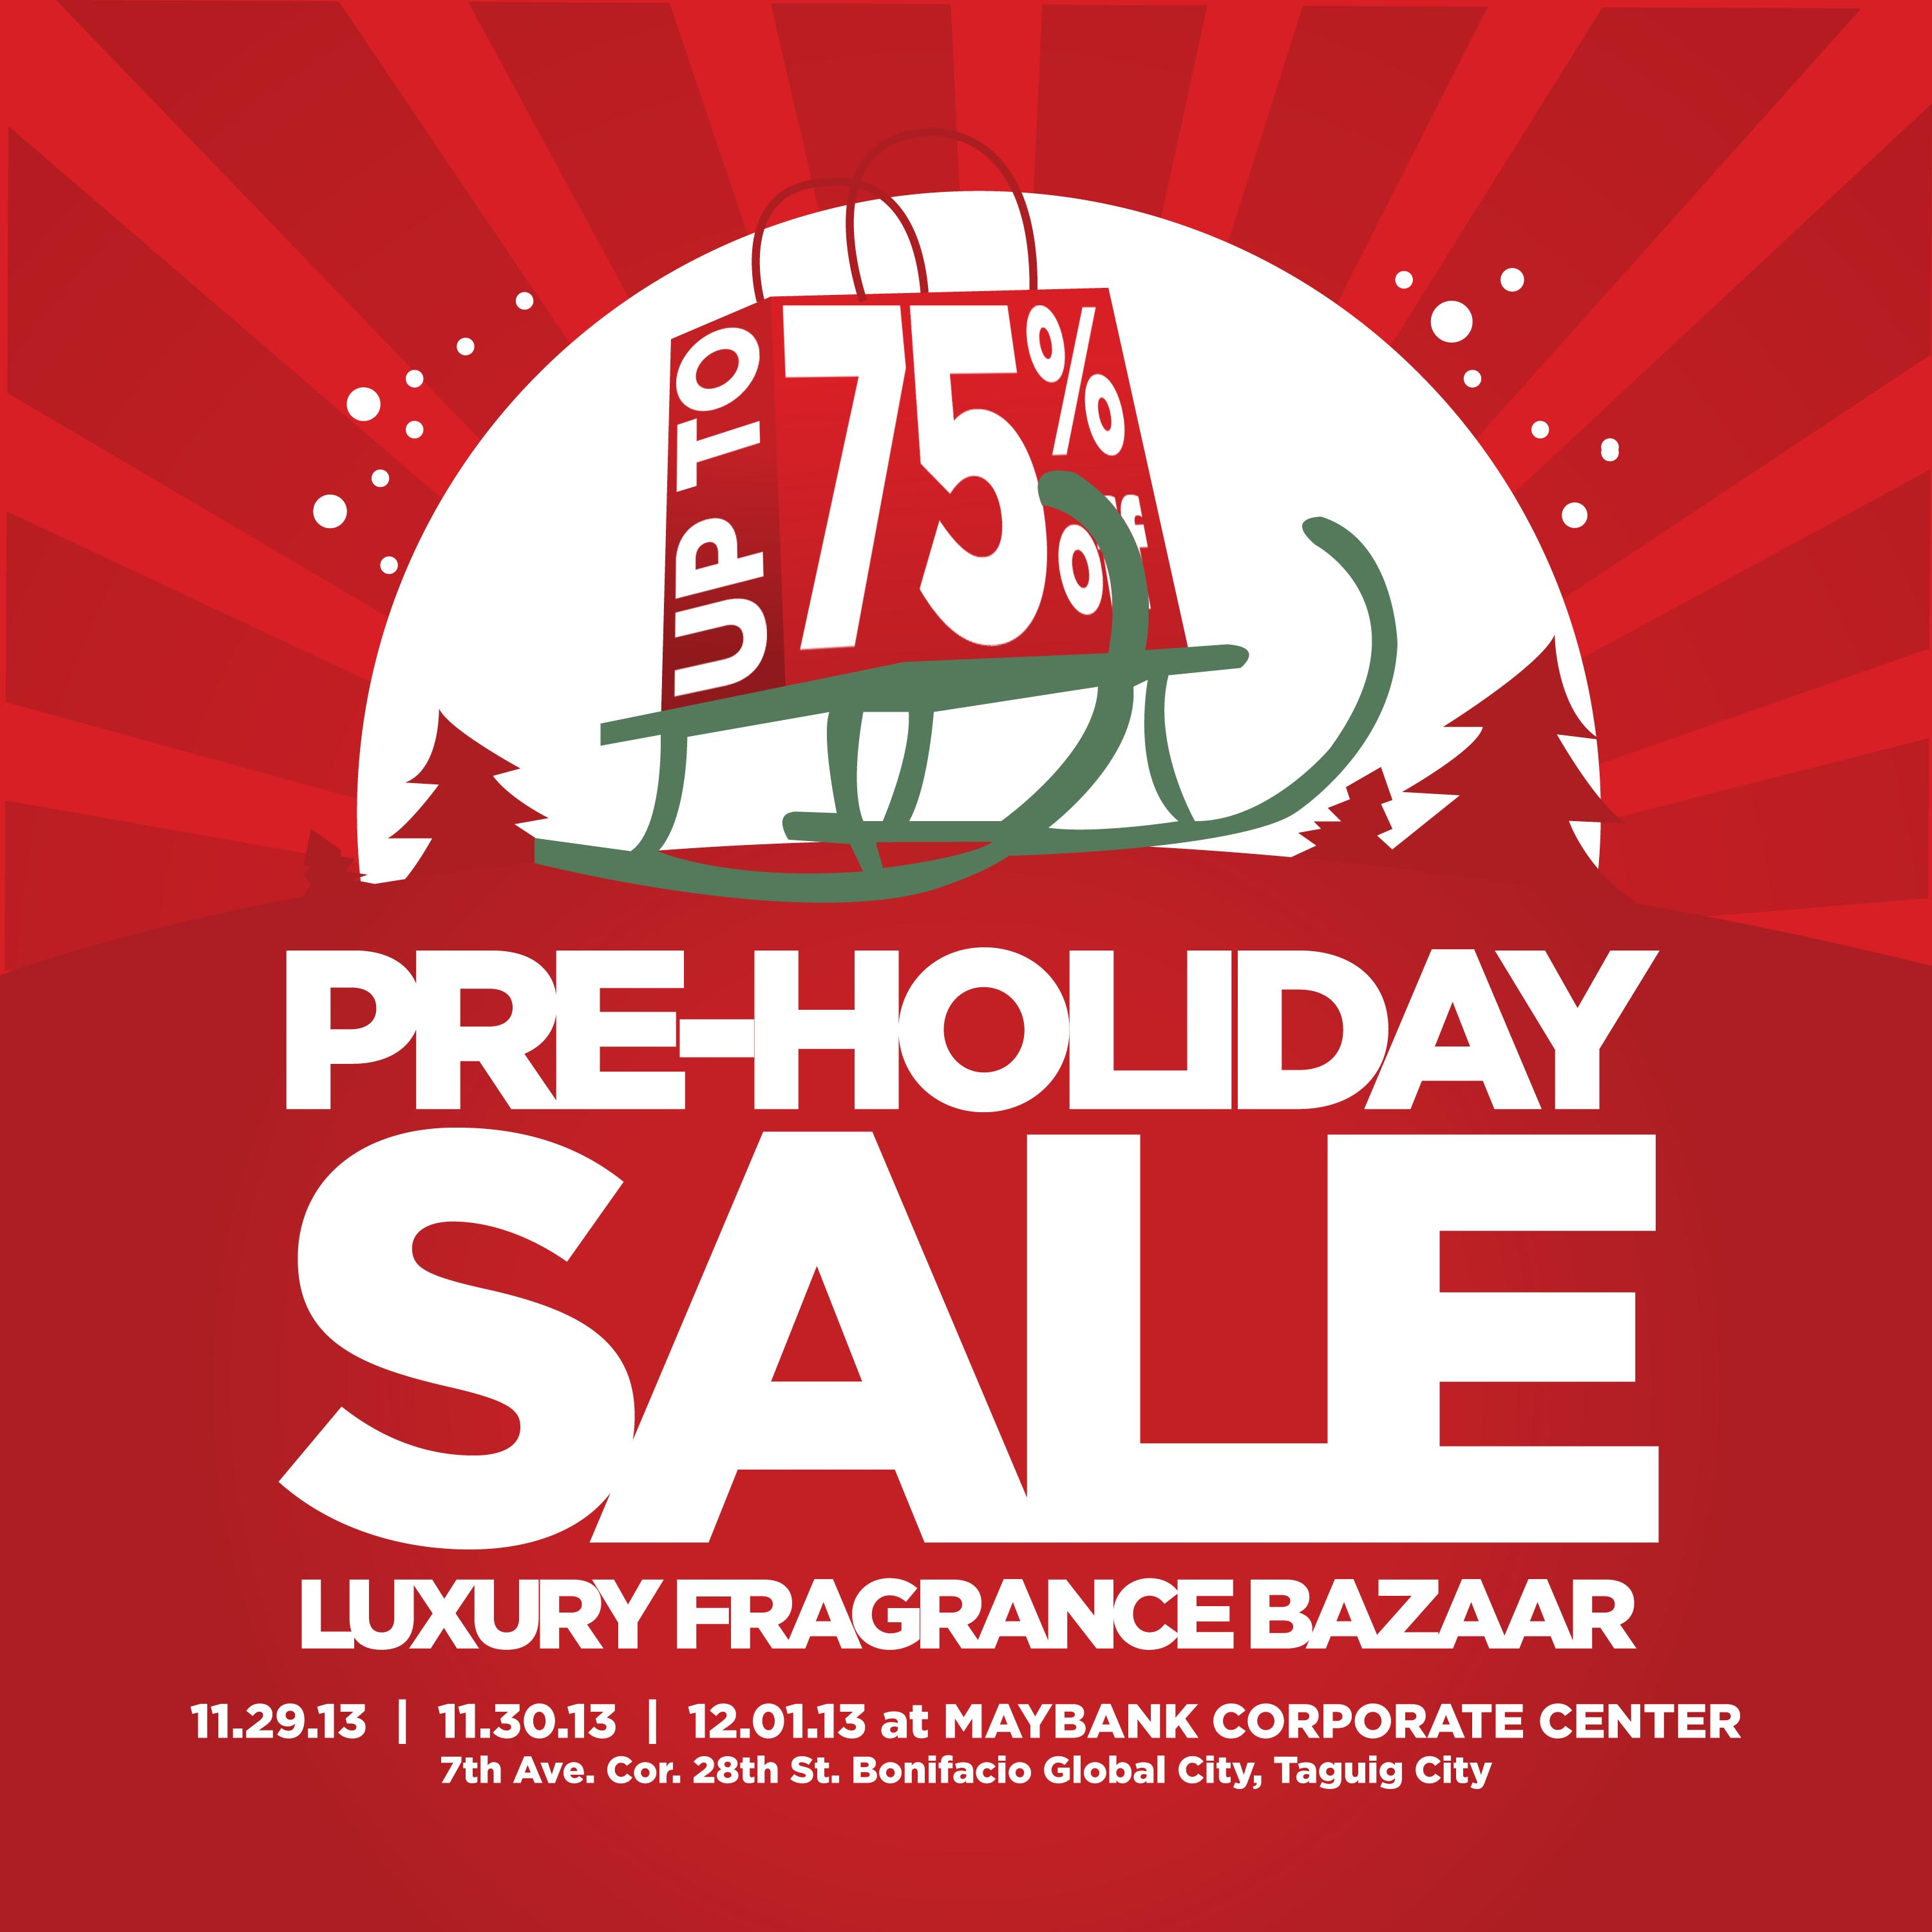 Luxury Fragrance Bazaar Pre-Holiday Sale @ Maybank Plaza November - December 2013